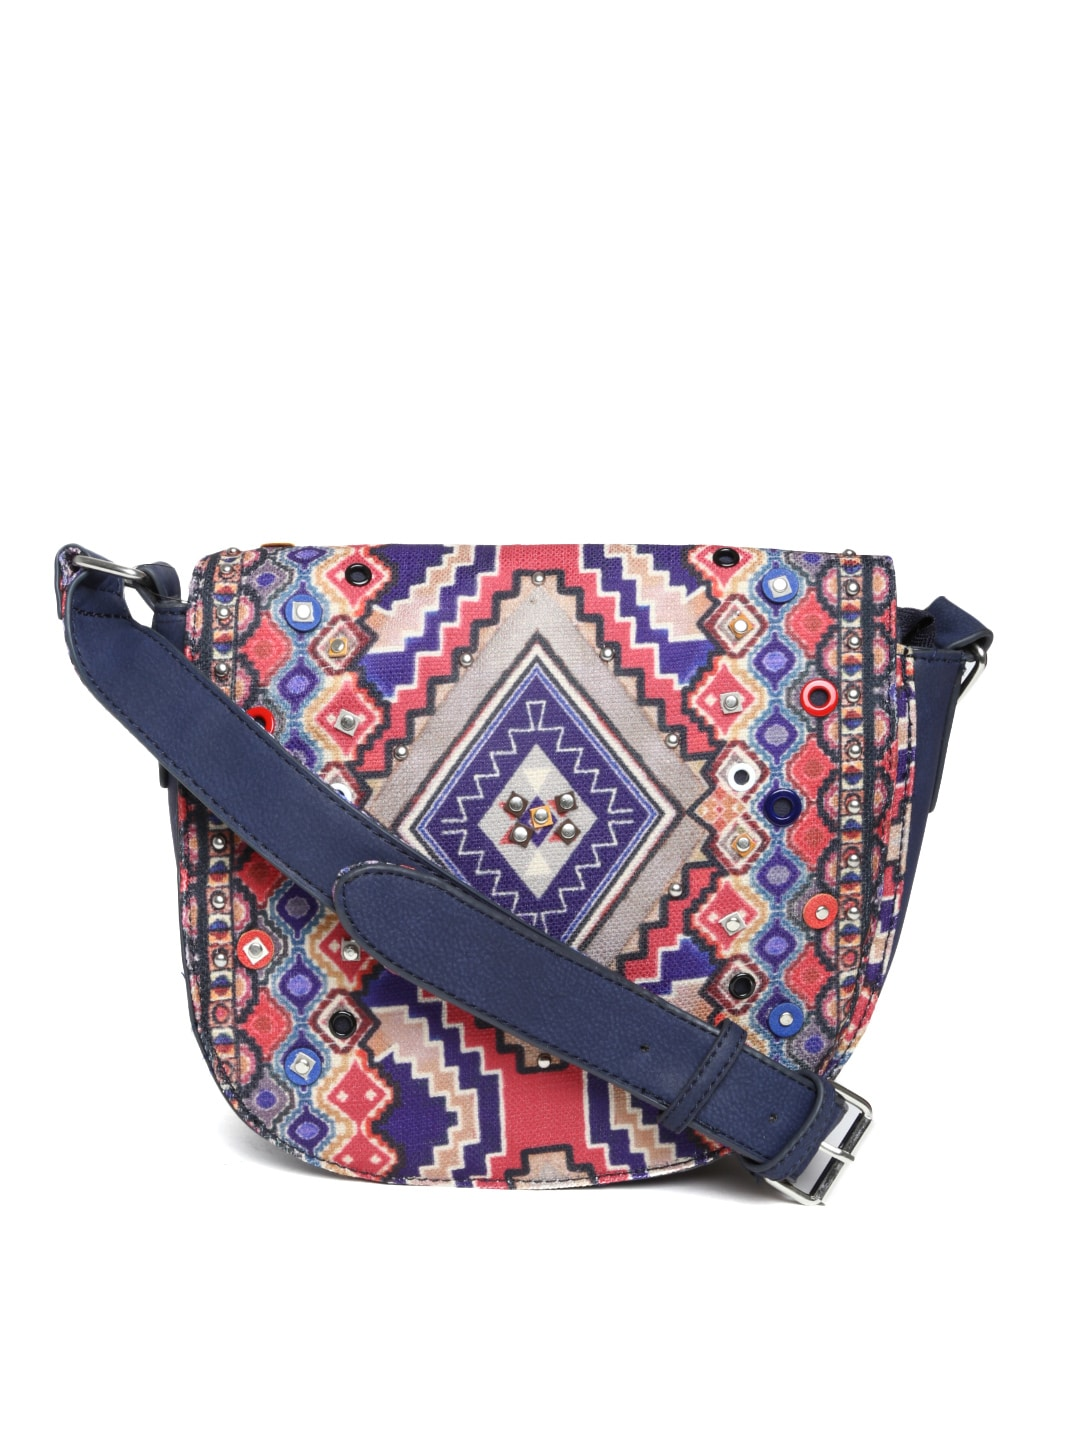 Buy Daphne Brown Sling Bag - Handbags for Women | Myntra